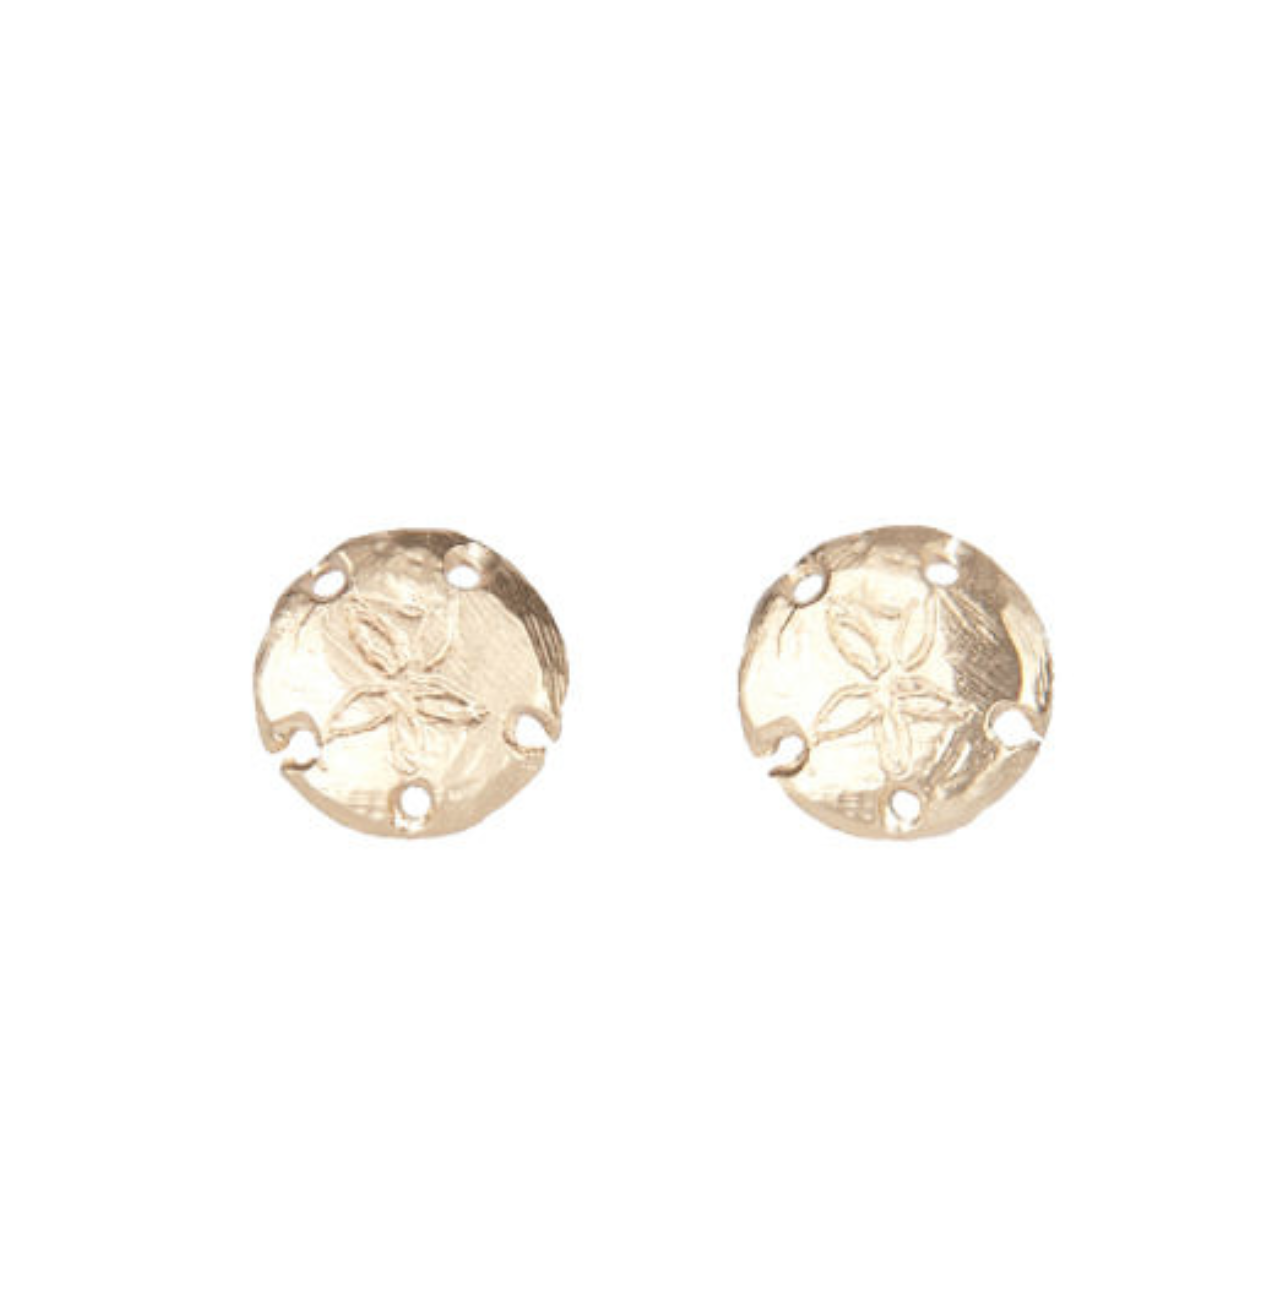 My Favorite Jewelry Designers For Unique Jewelry: Jane Pope Jewelry Sanddollar Studs